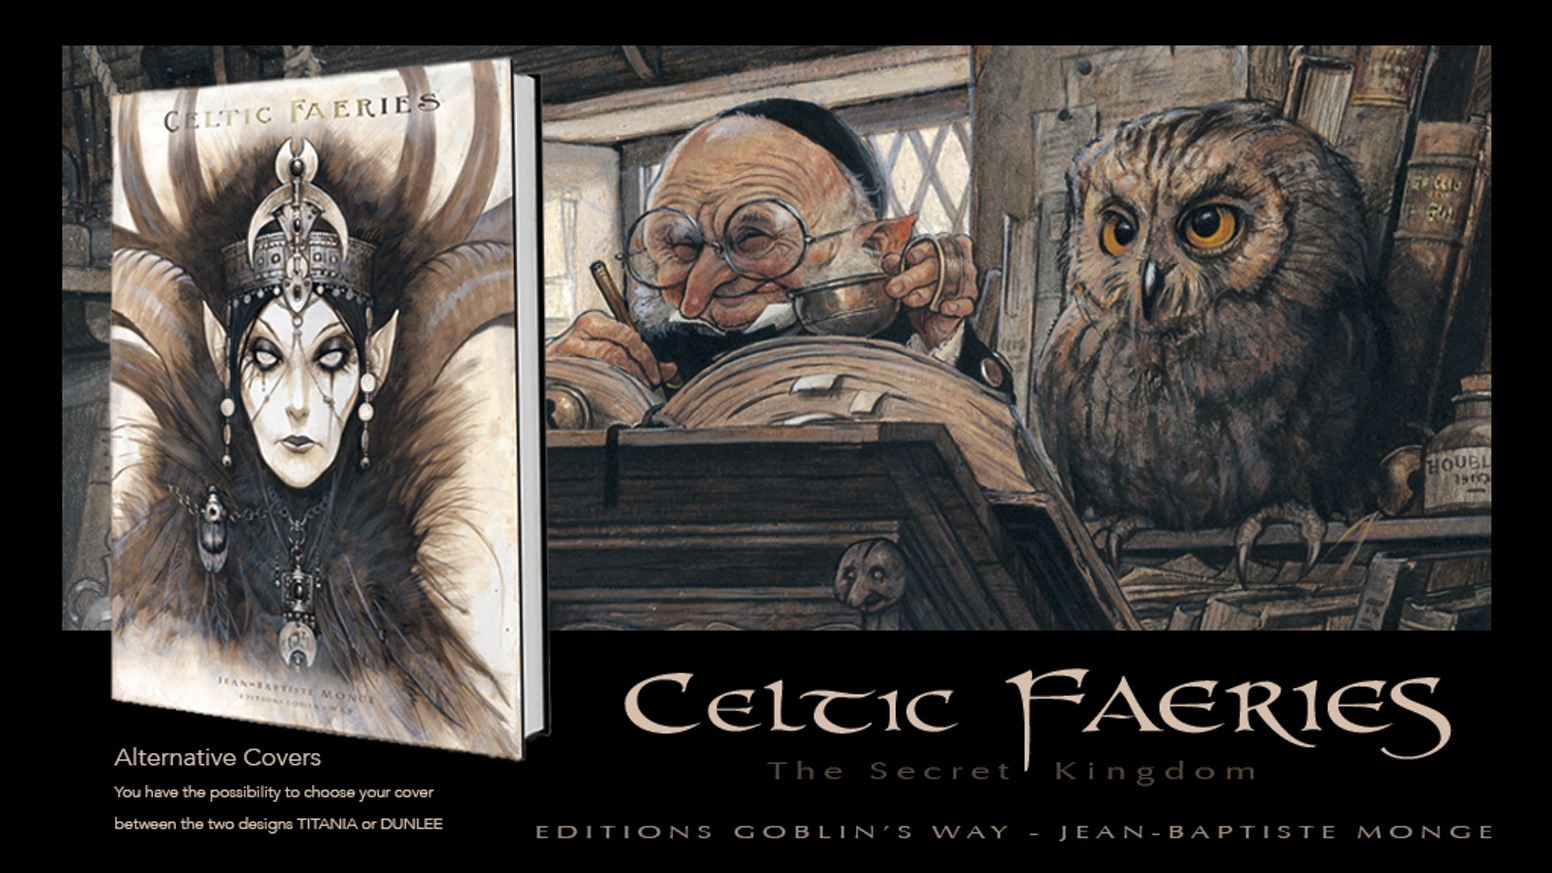 A colorful book about Celtic creatures and legends, painted and written by one of the greatest illustrators of this generation.